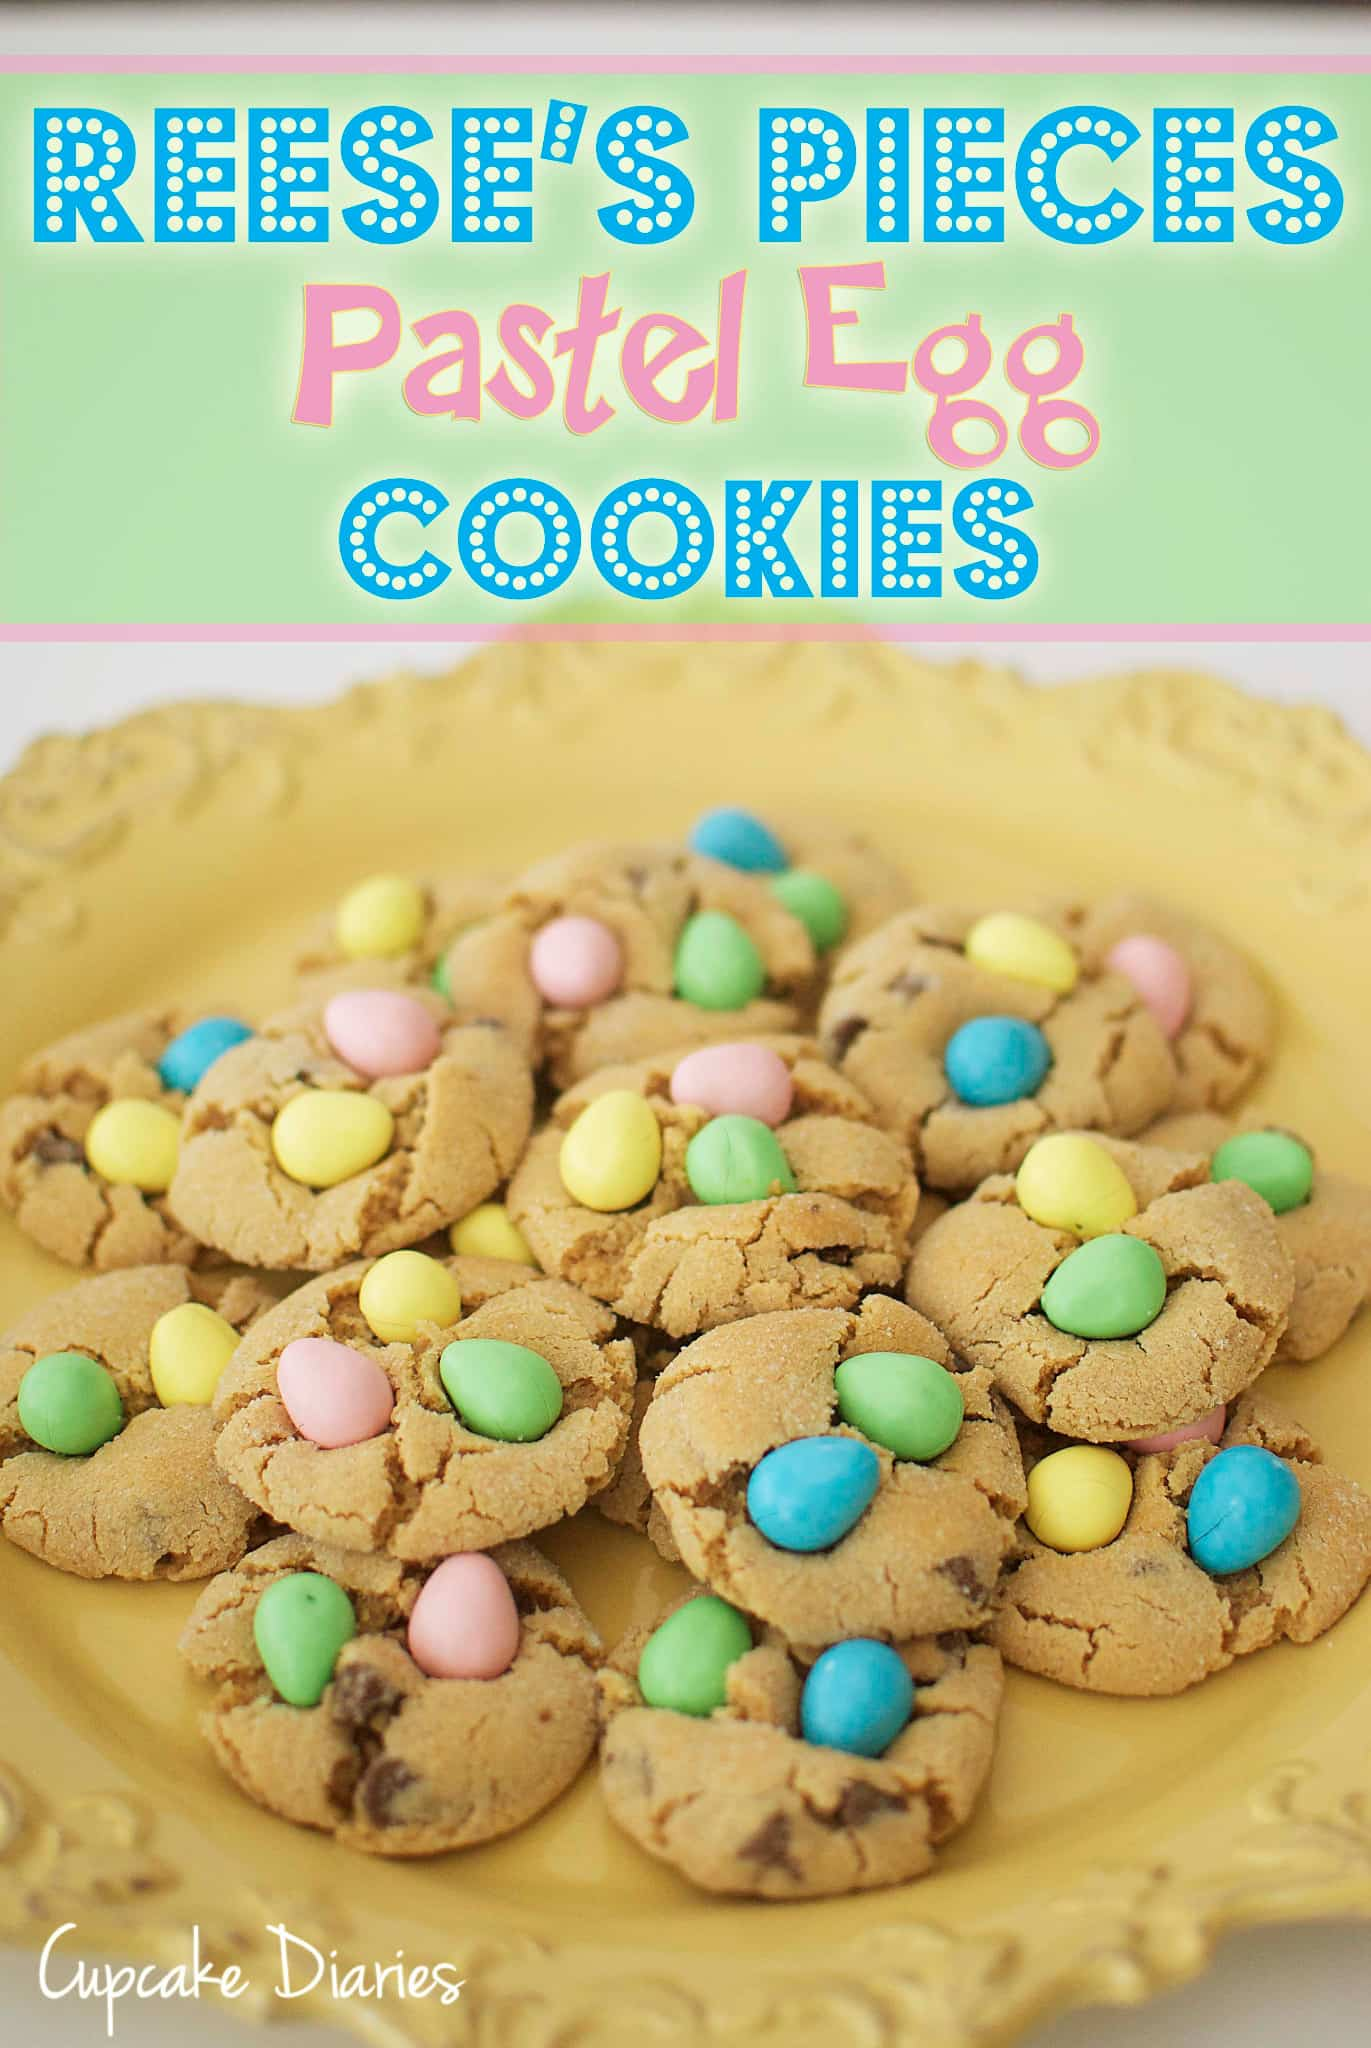 50 Pastel Desserts for Spring: Reese's Pieces Pastel Egg Cookies